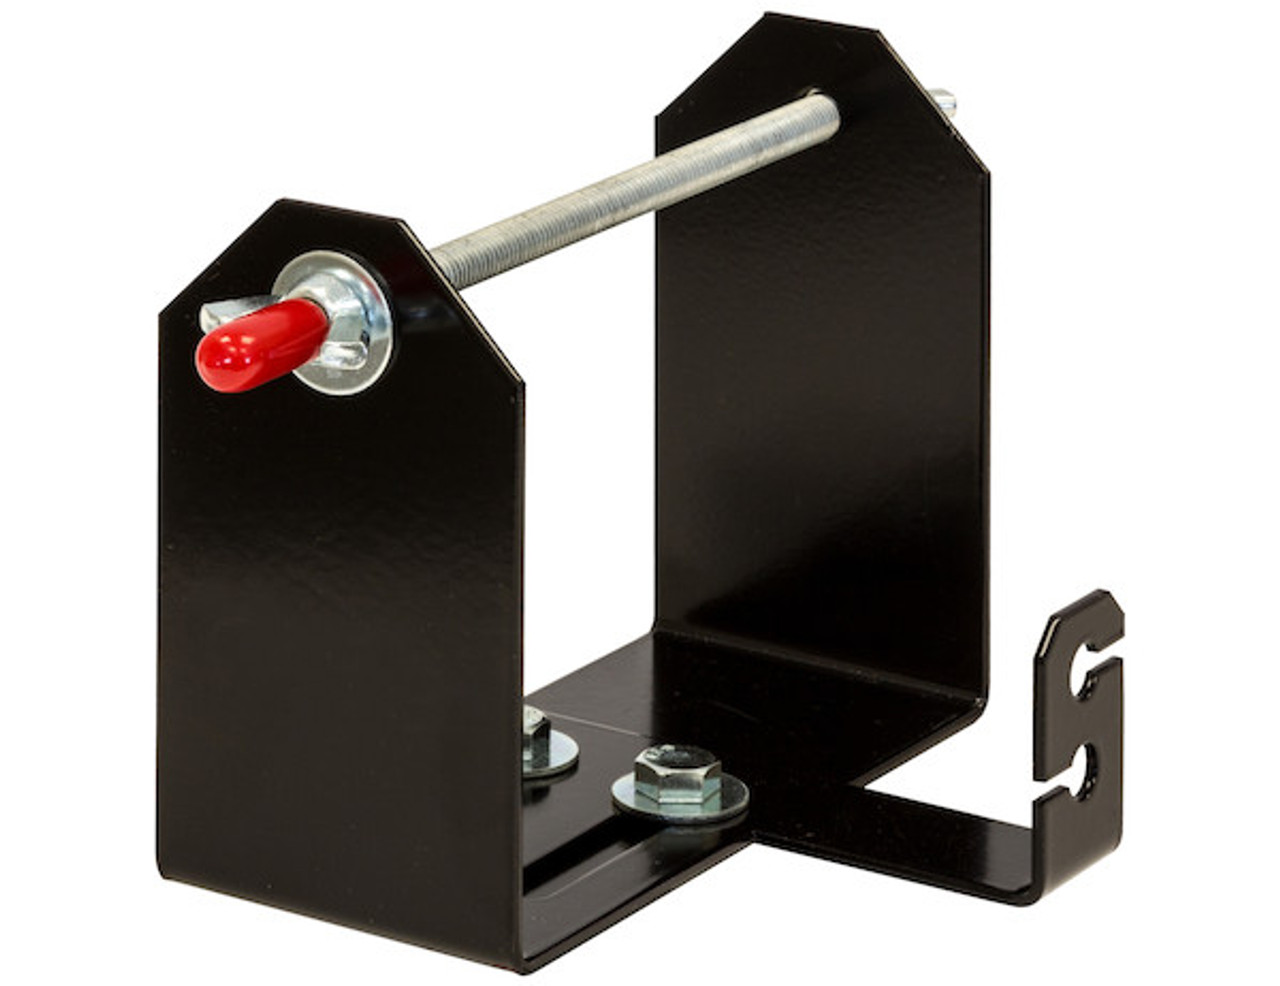 Buyers LT40 Trimmer Line Spool Bracket for Landscaping Trailers, Garages, Sheds, Construction Vehicles Picture # 1